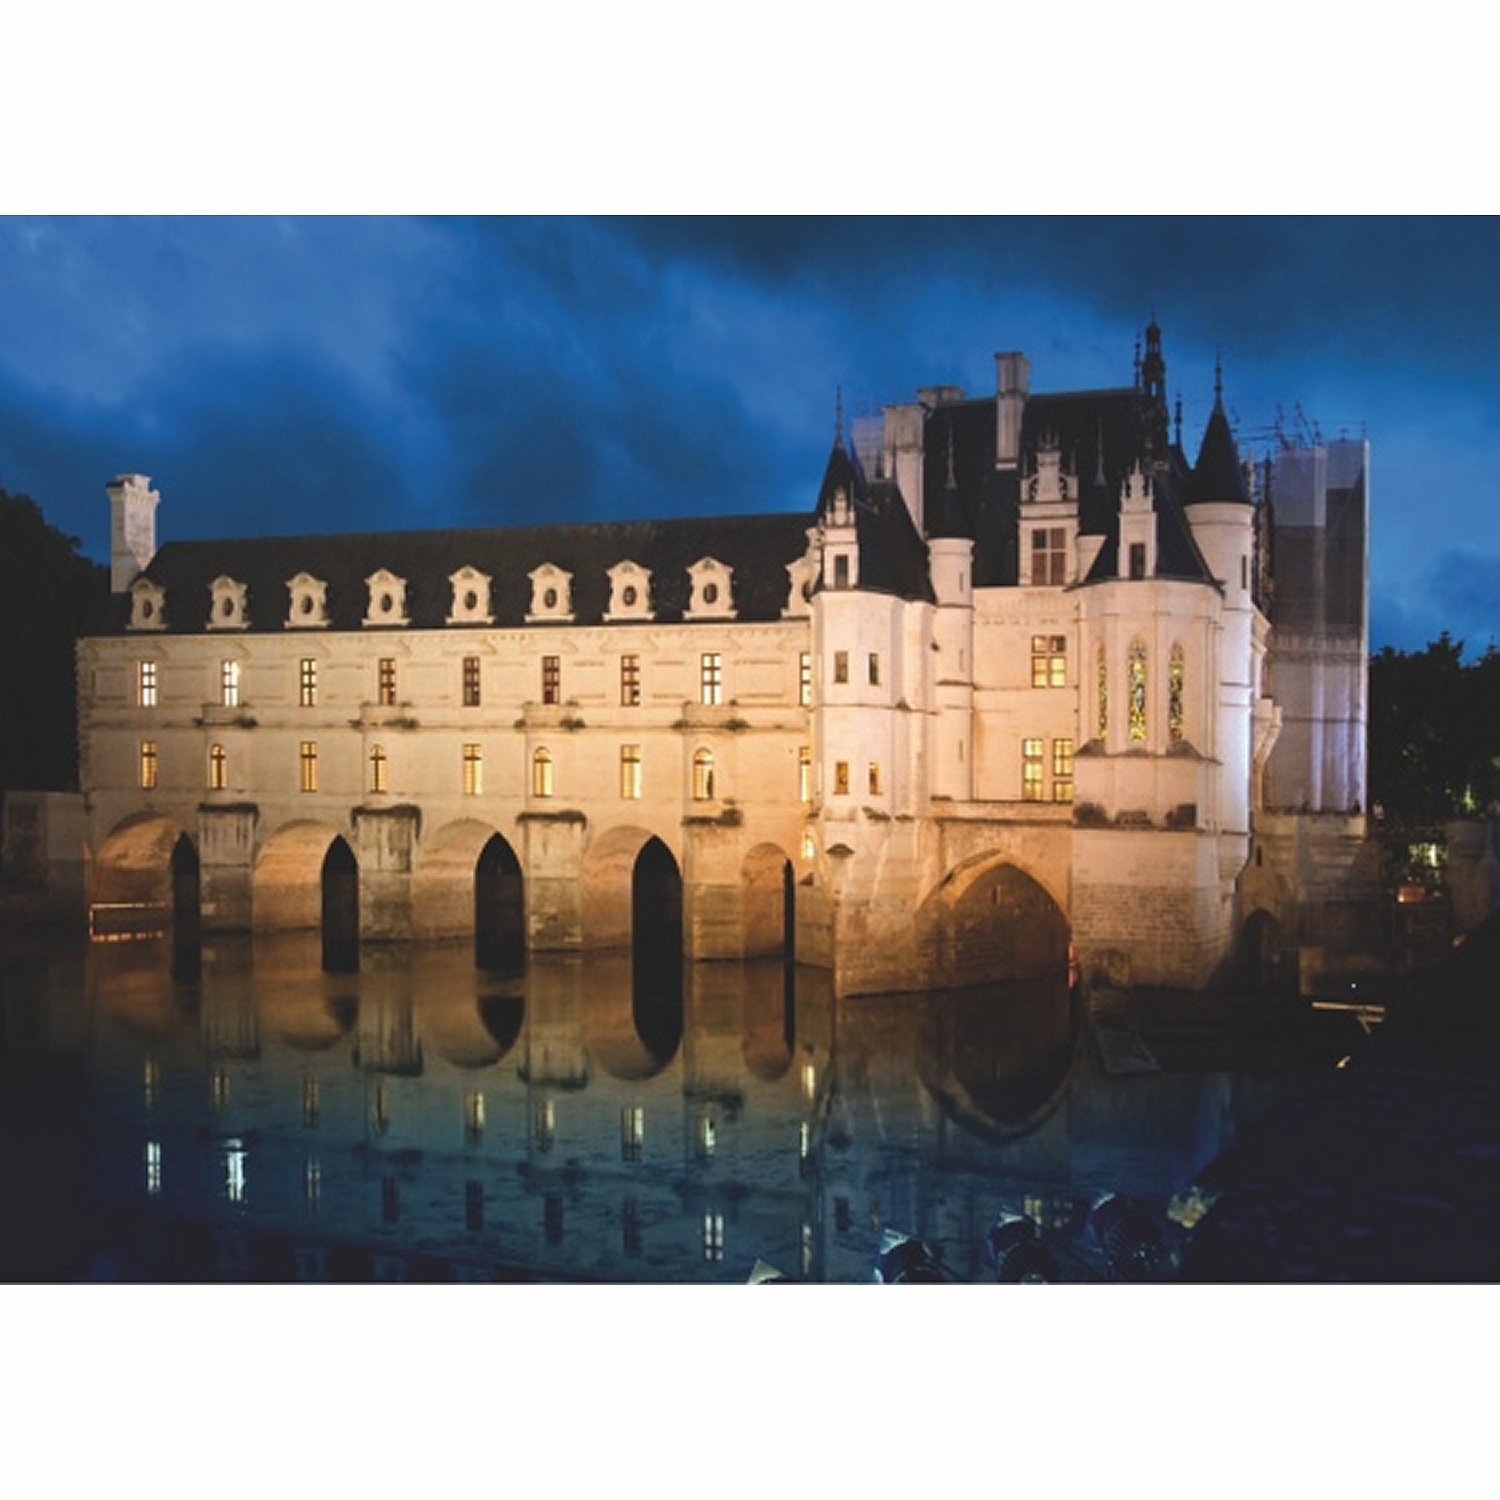 ch teau de france ch teau de chenonceau 1000 teile. Black Bedroom Furniture Sets. Home Design Ideas